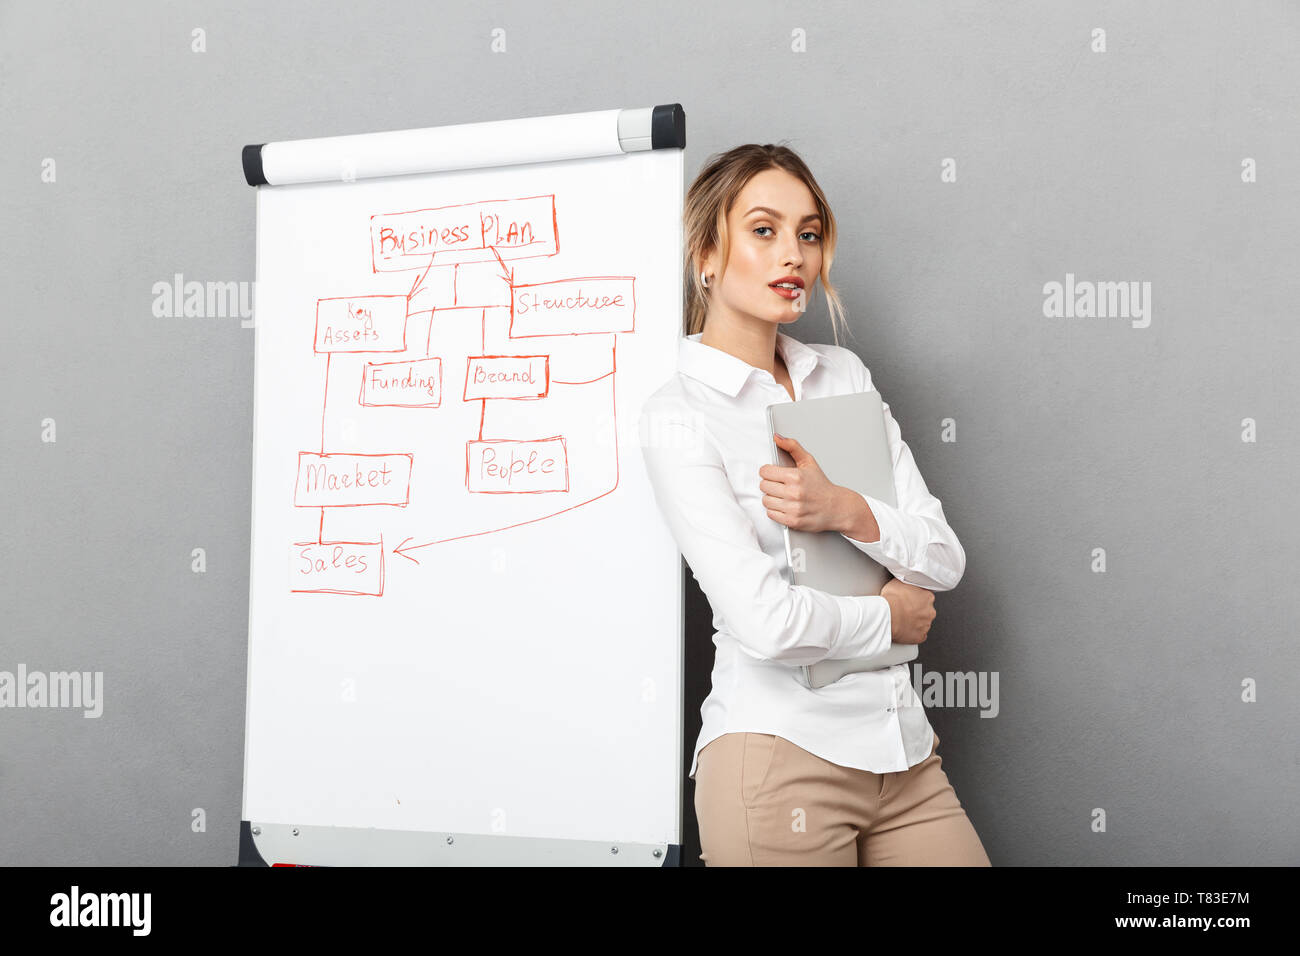 Image of european businesswoman in formal wear using flipchart and laptop while making presentation in the office isolated over gray background - Stock Image